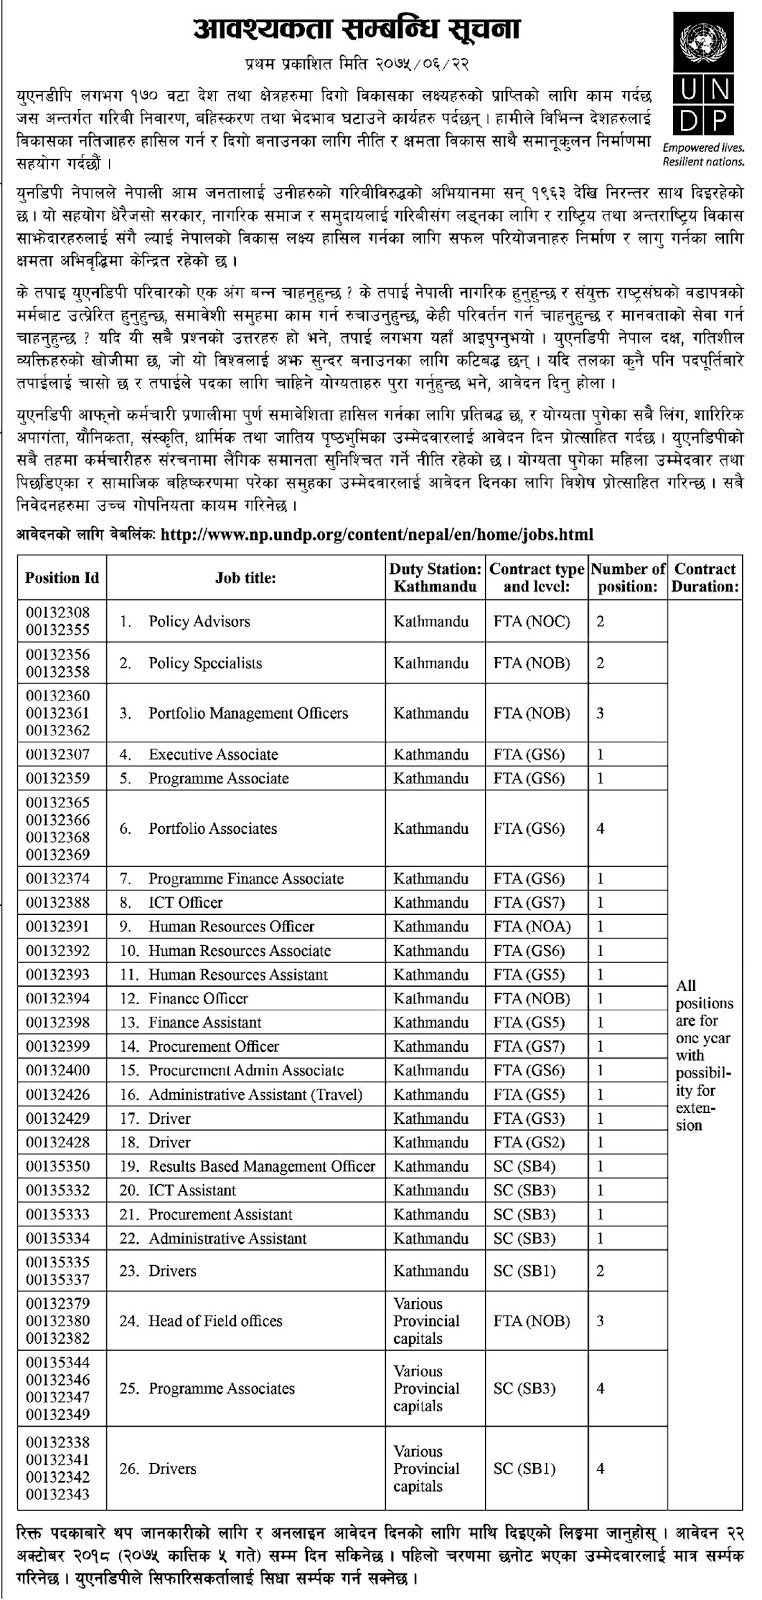 United Nations Development Programme (UNDP) Announced A Lot Of Vacancies For Various Post